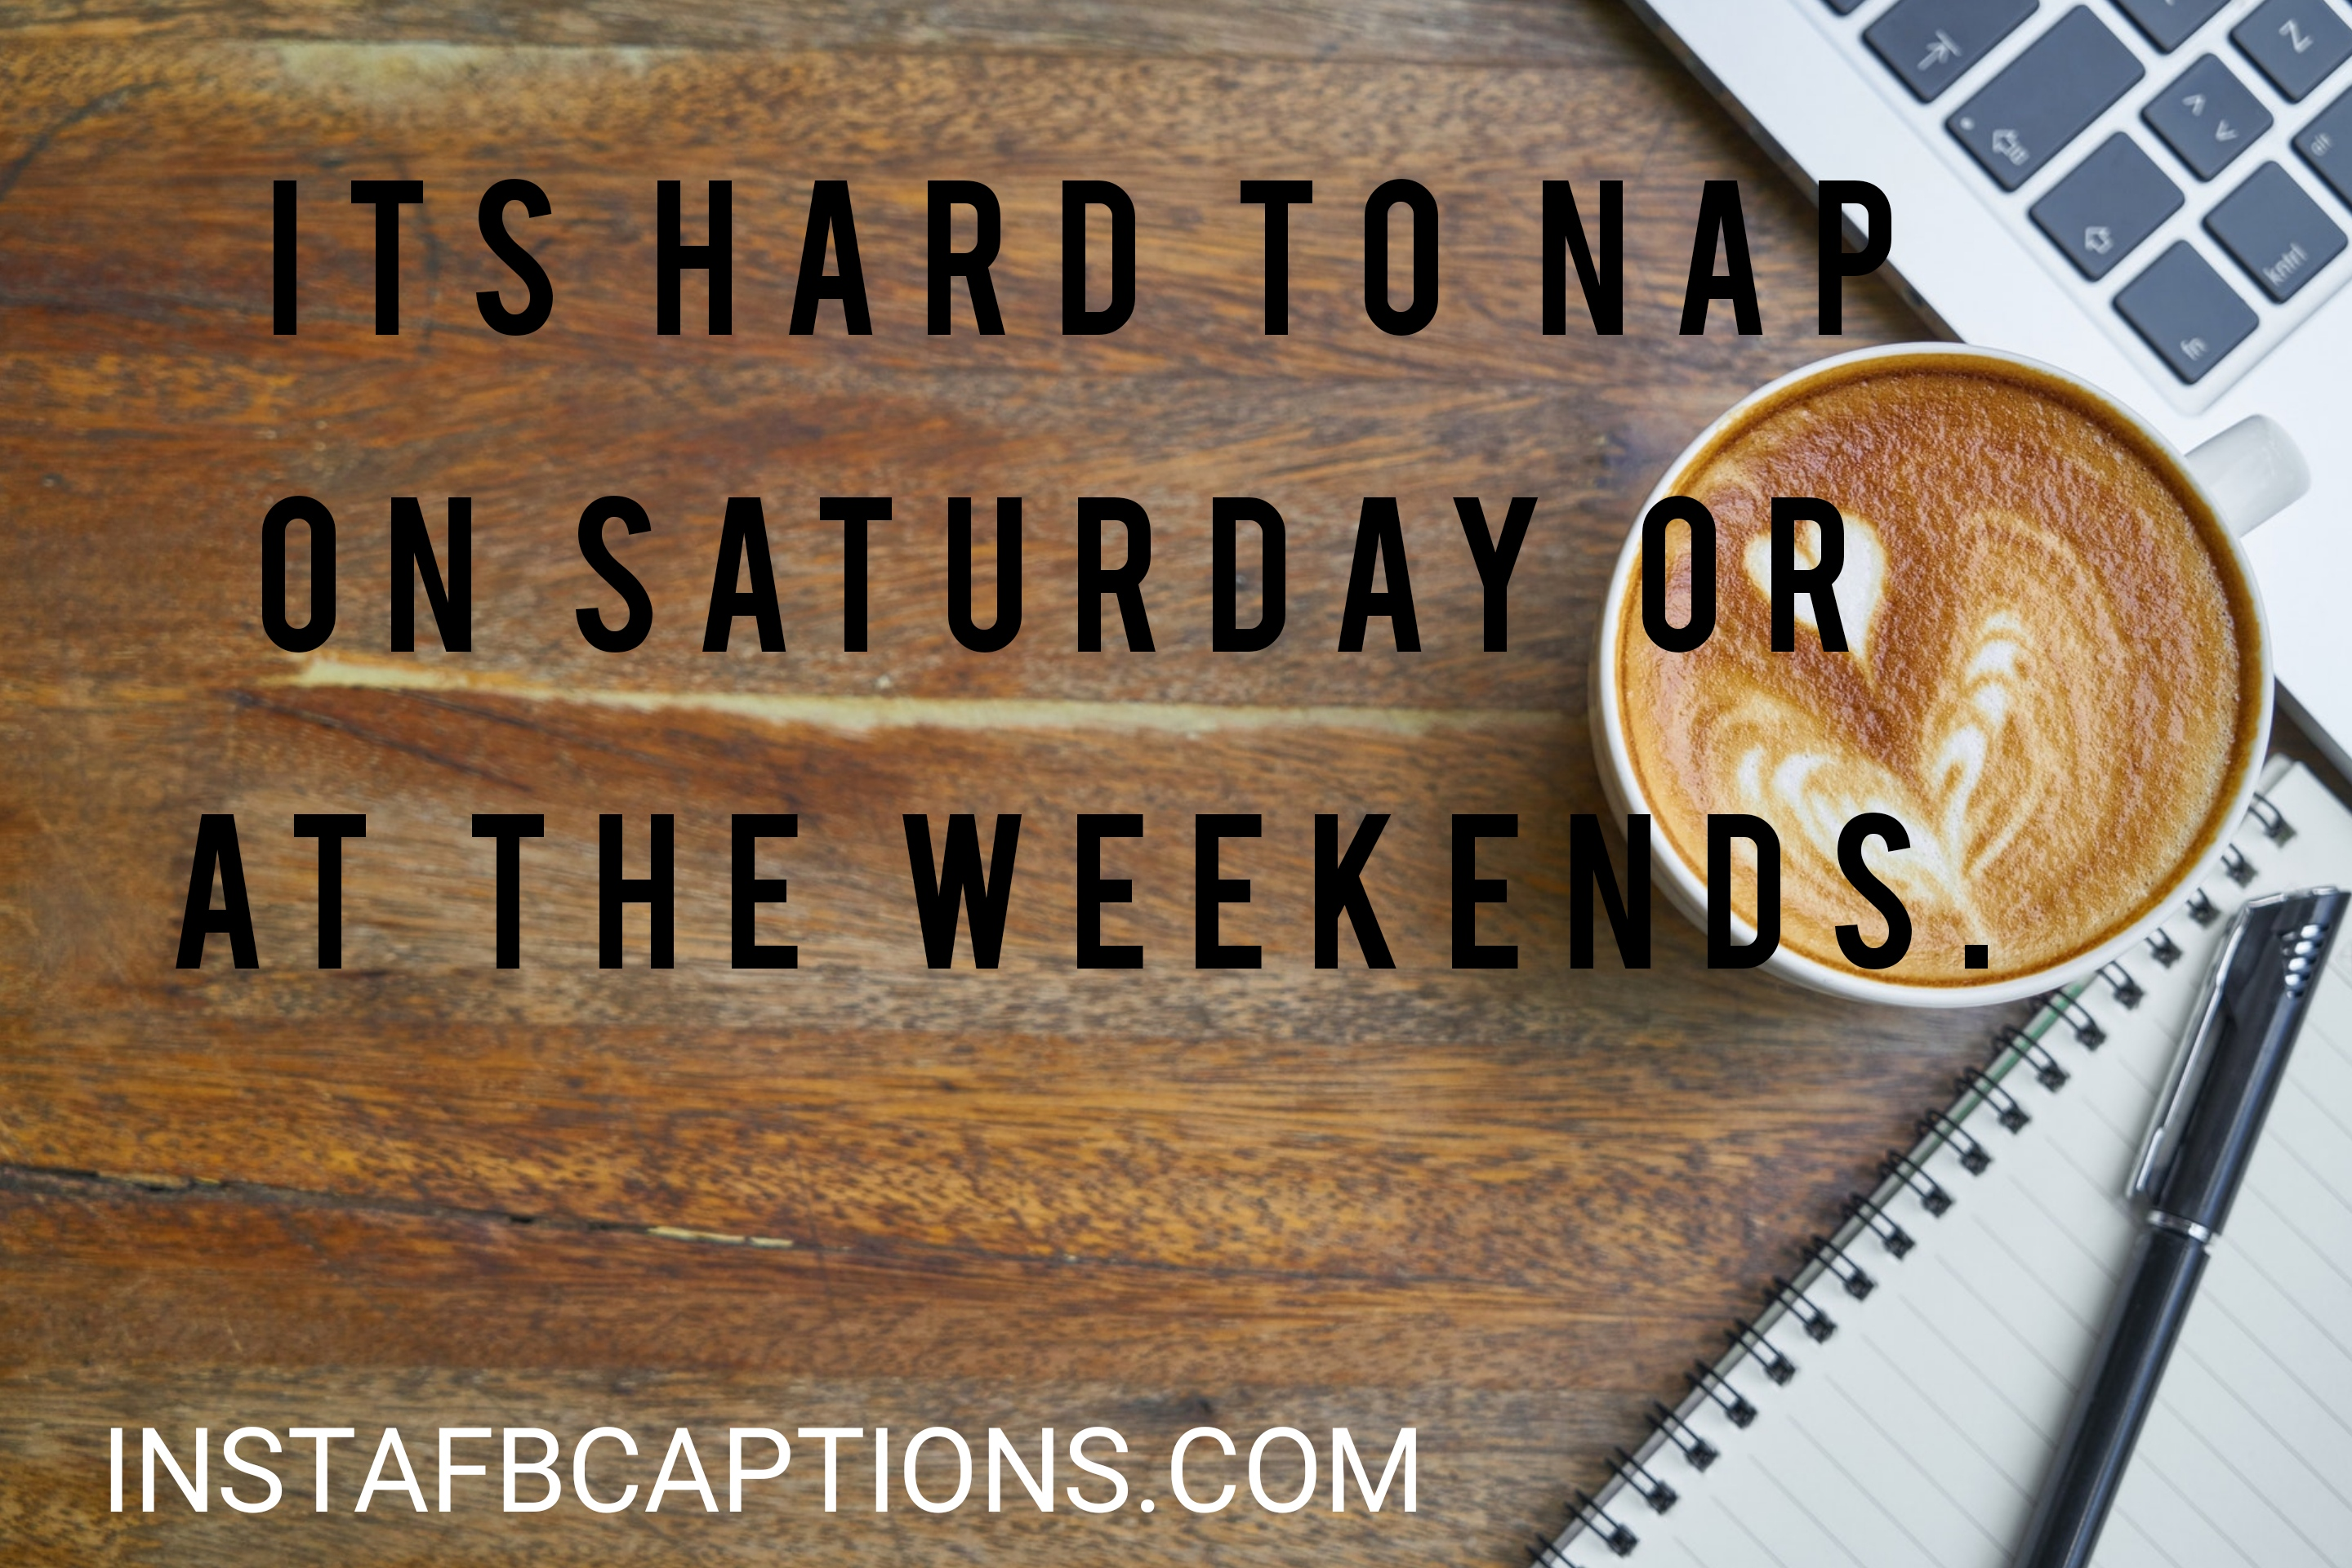 Its Hard To Nap On Saturday Or Atthe Weekends  - its hard to nap on saturday or atthe weekends - 500+ Weekend Captions (Friends Long Trip Food Throwback)